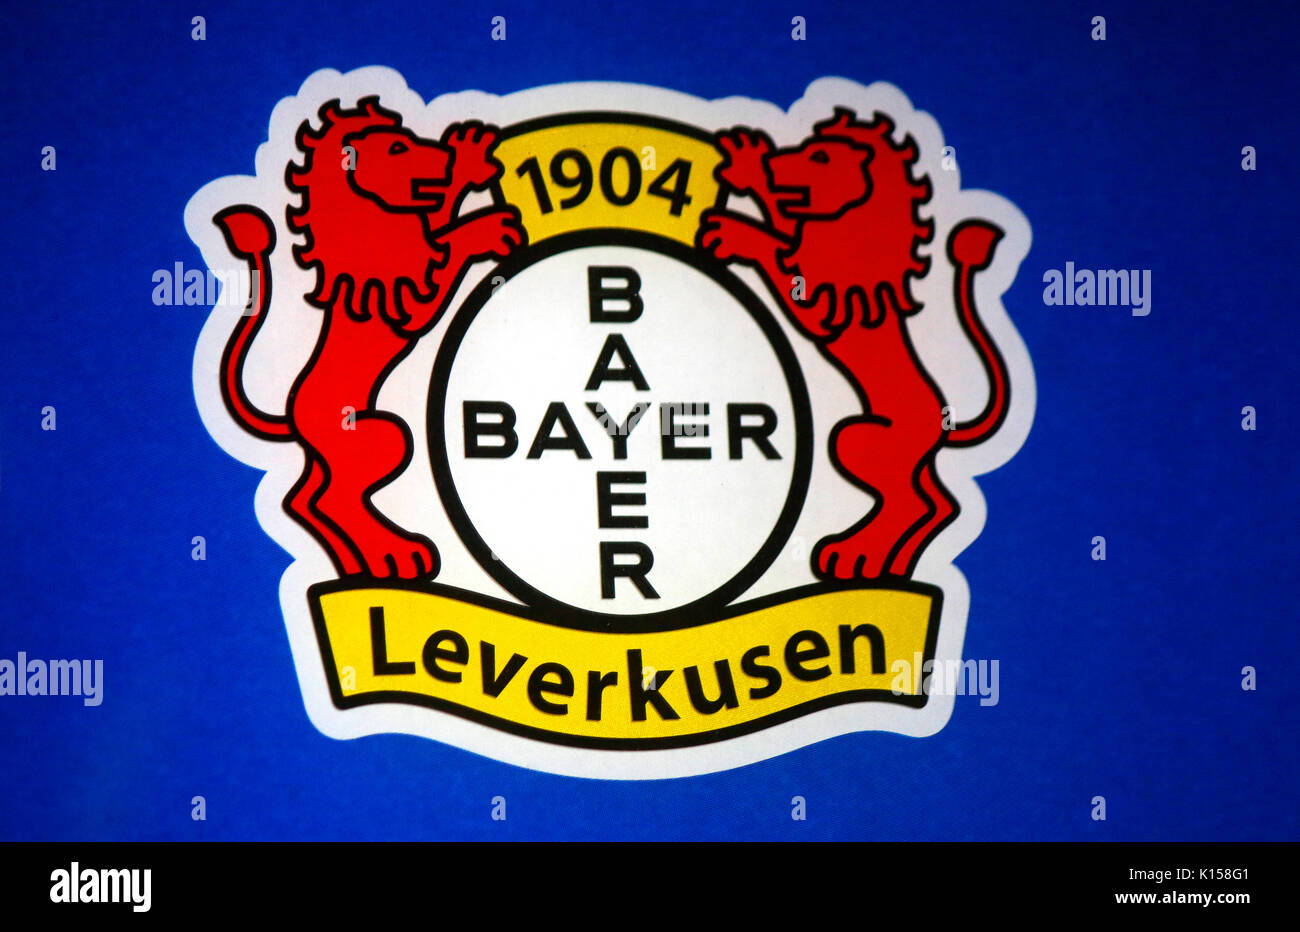 Bayer logo stock photos bayer logo stock images alamy das logo der marke bayer leverkusen berlin stock image buycottarizona Image collections